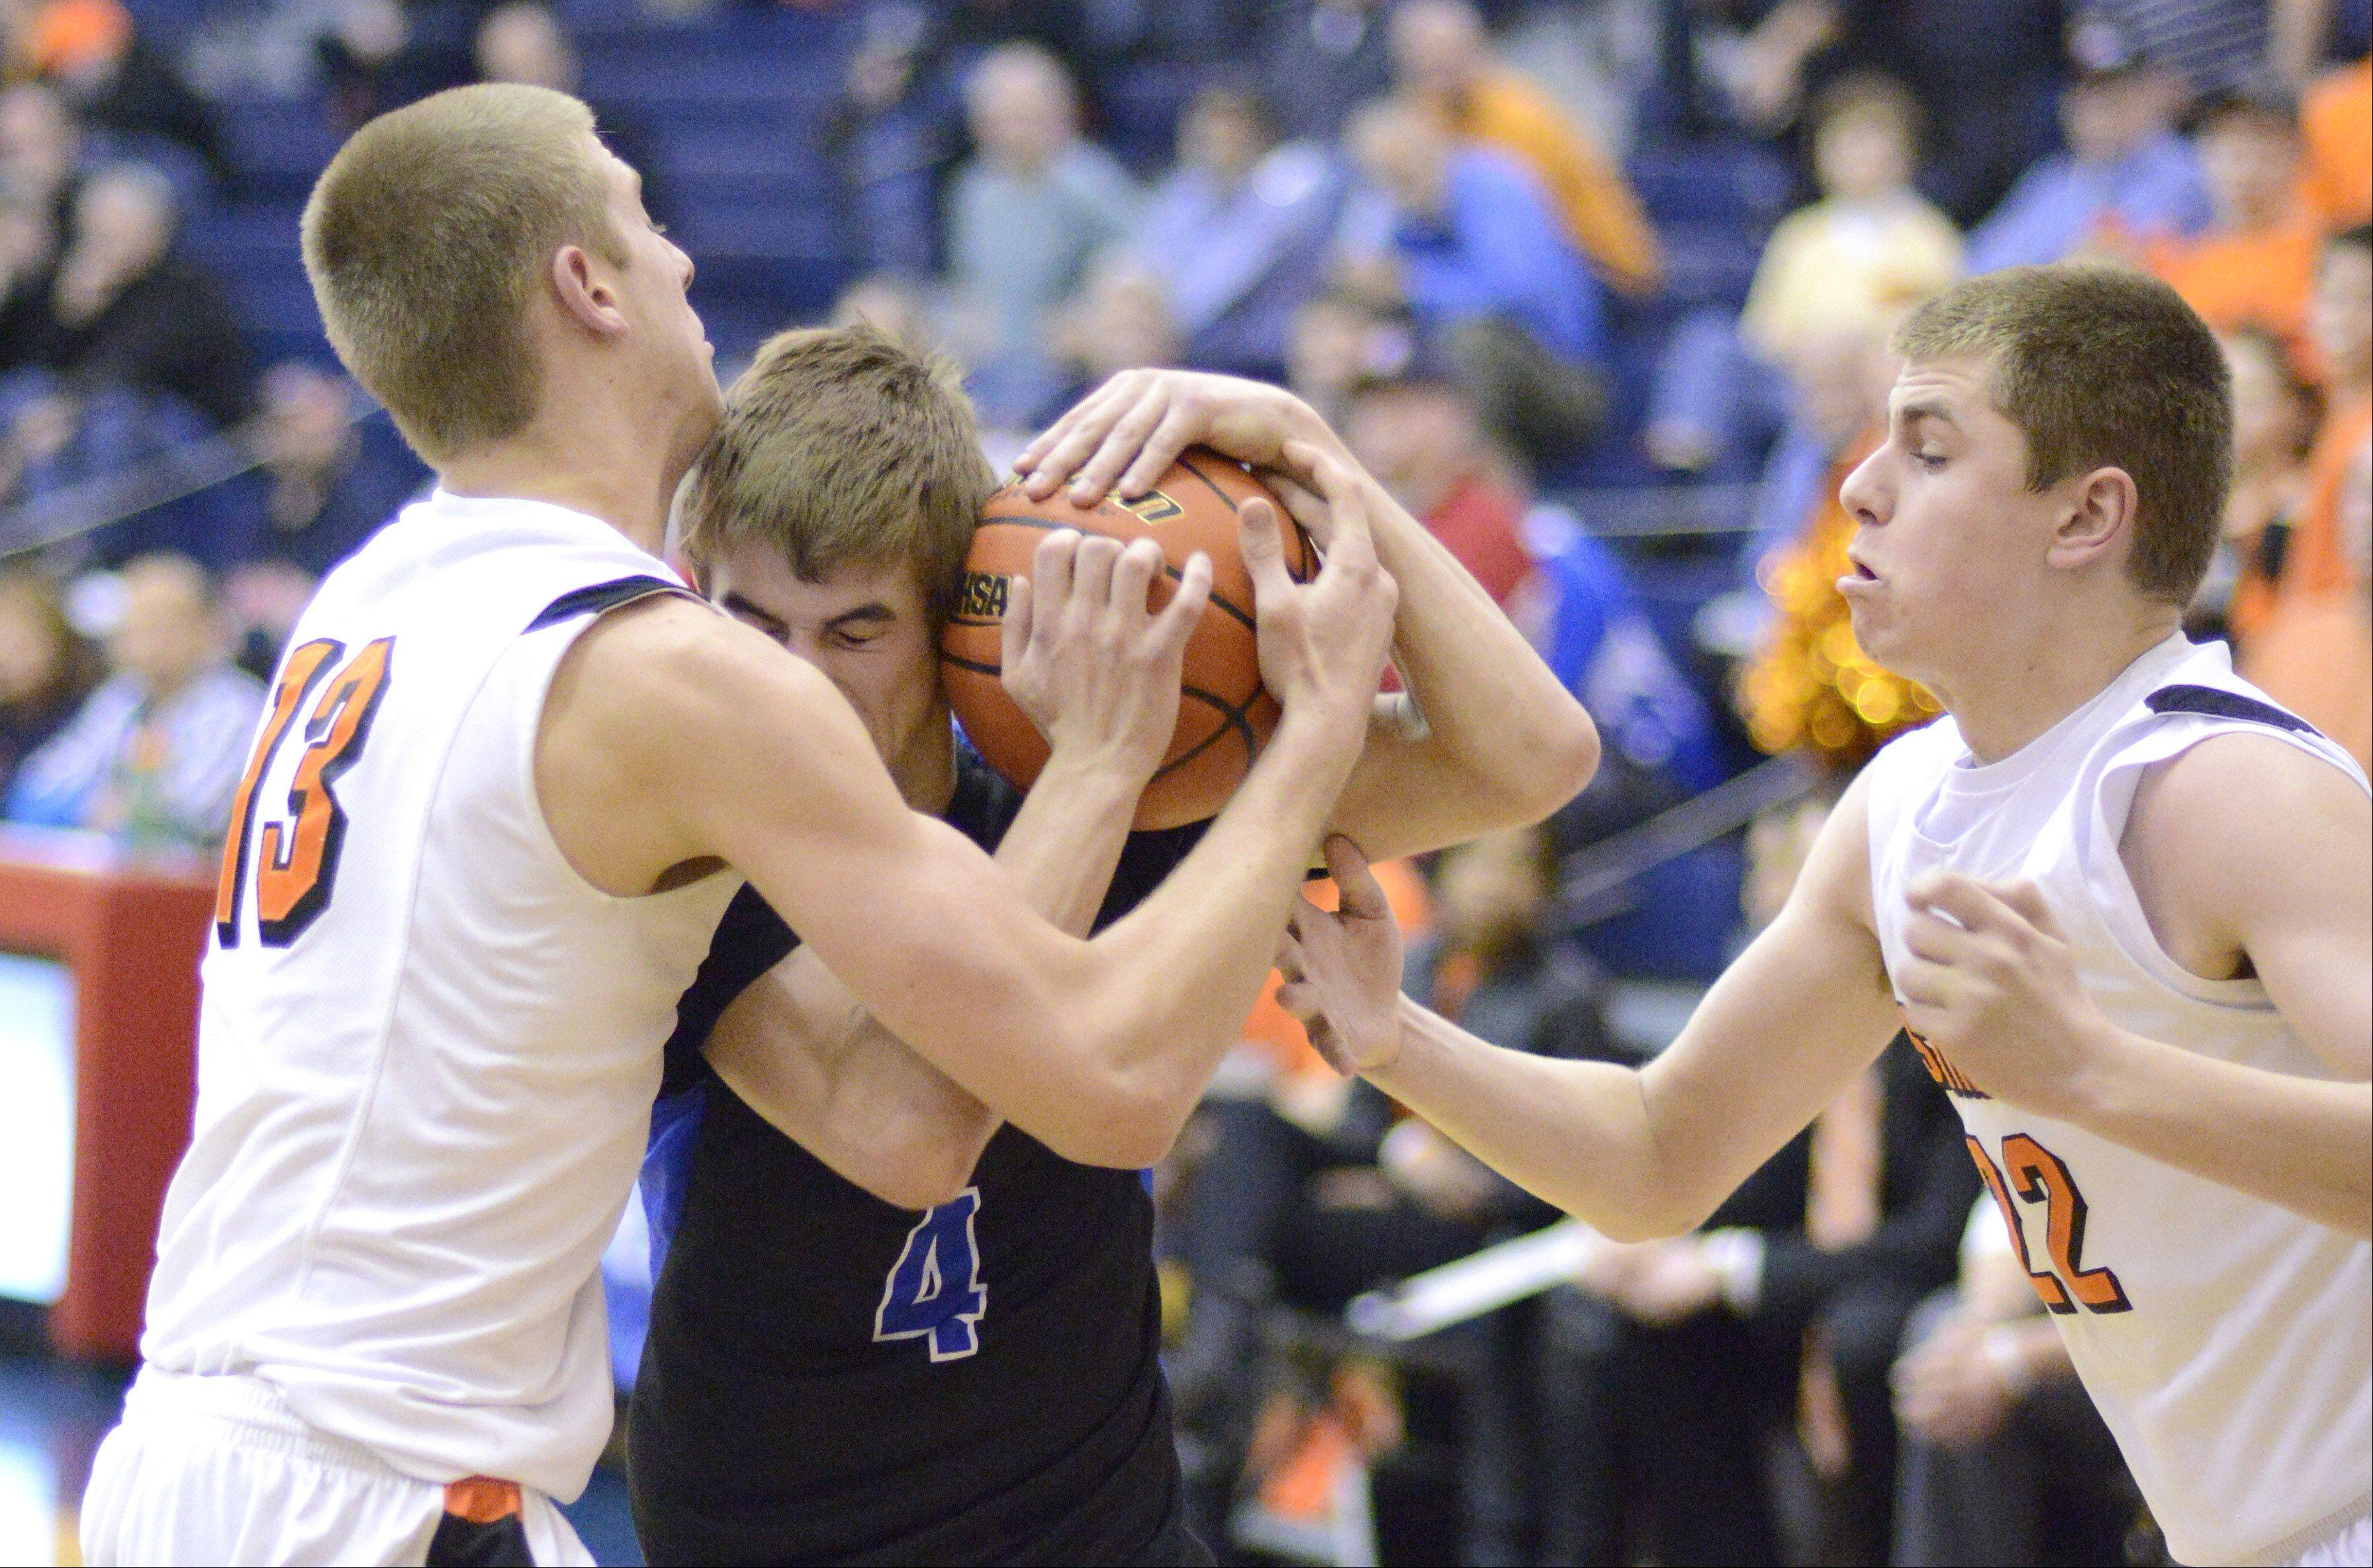 St. Charles North's Jake Ludwig wrestles with St. Charles East's Ben Skoog and James McQuillan until a foul is called on the Saints in the third quarter of the Class 4A regional on Wednesday, February 27. St. Charles North will play Larkin Friday.